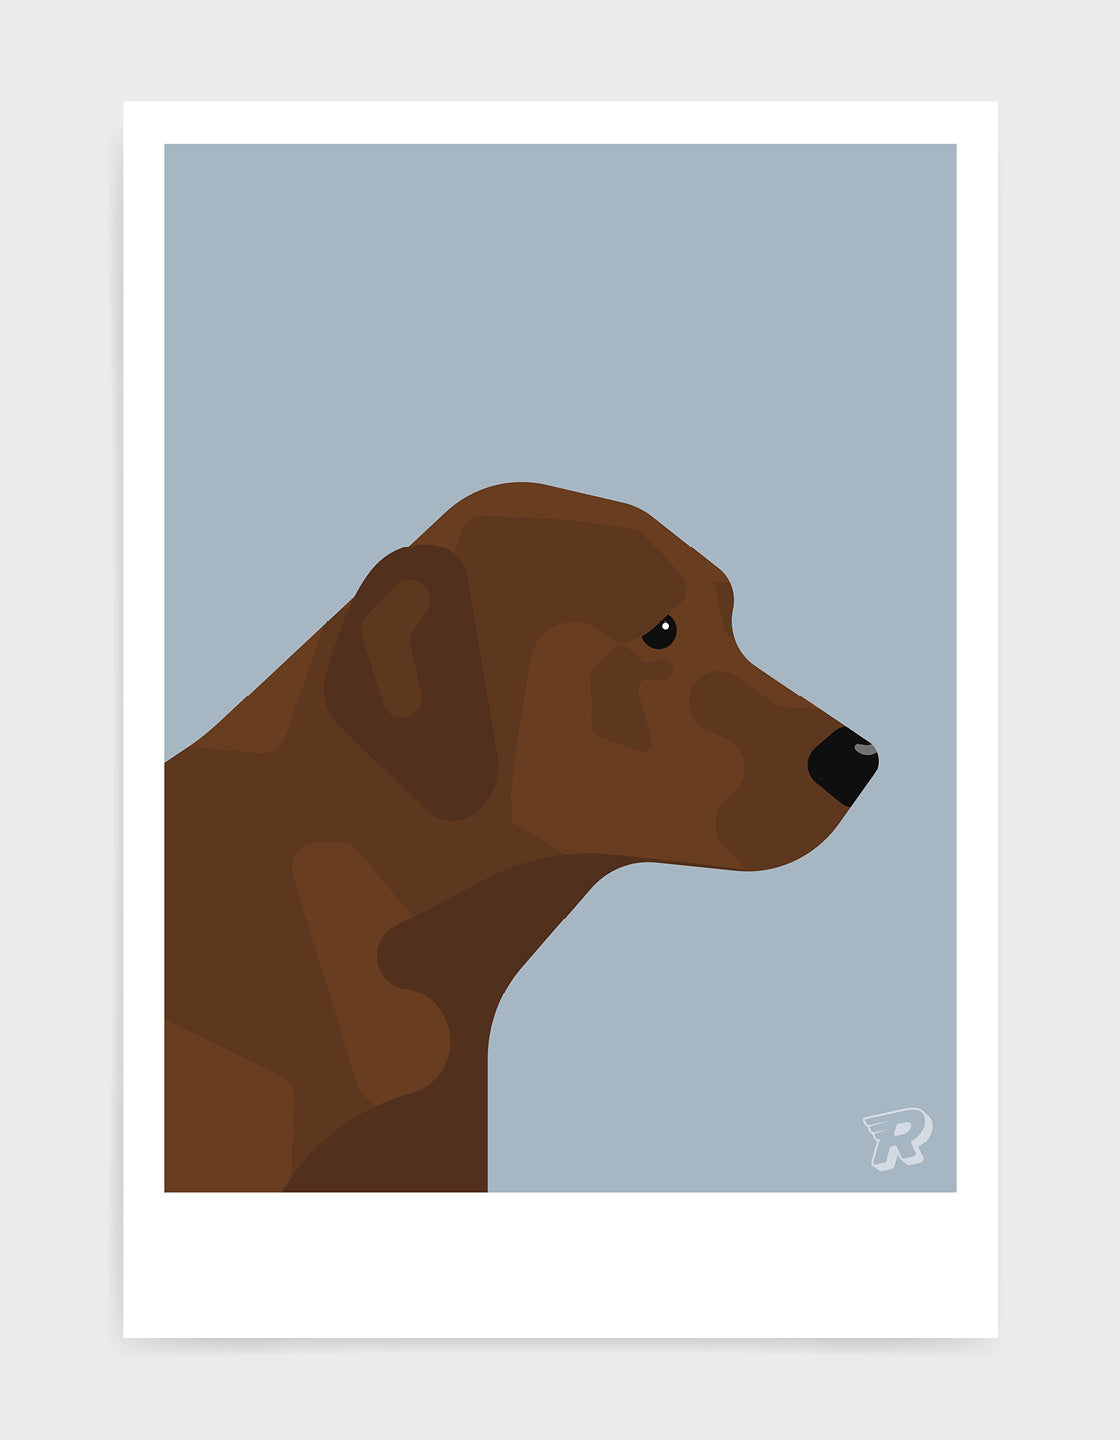 modern dog art print of a chocolate labrador in profile against a light grey background